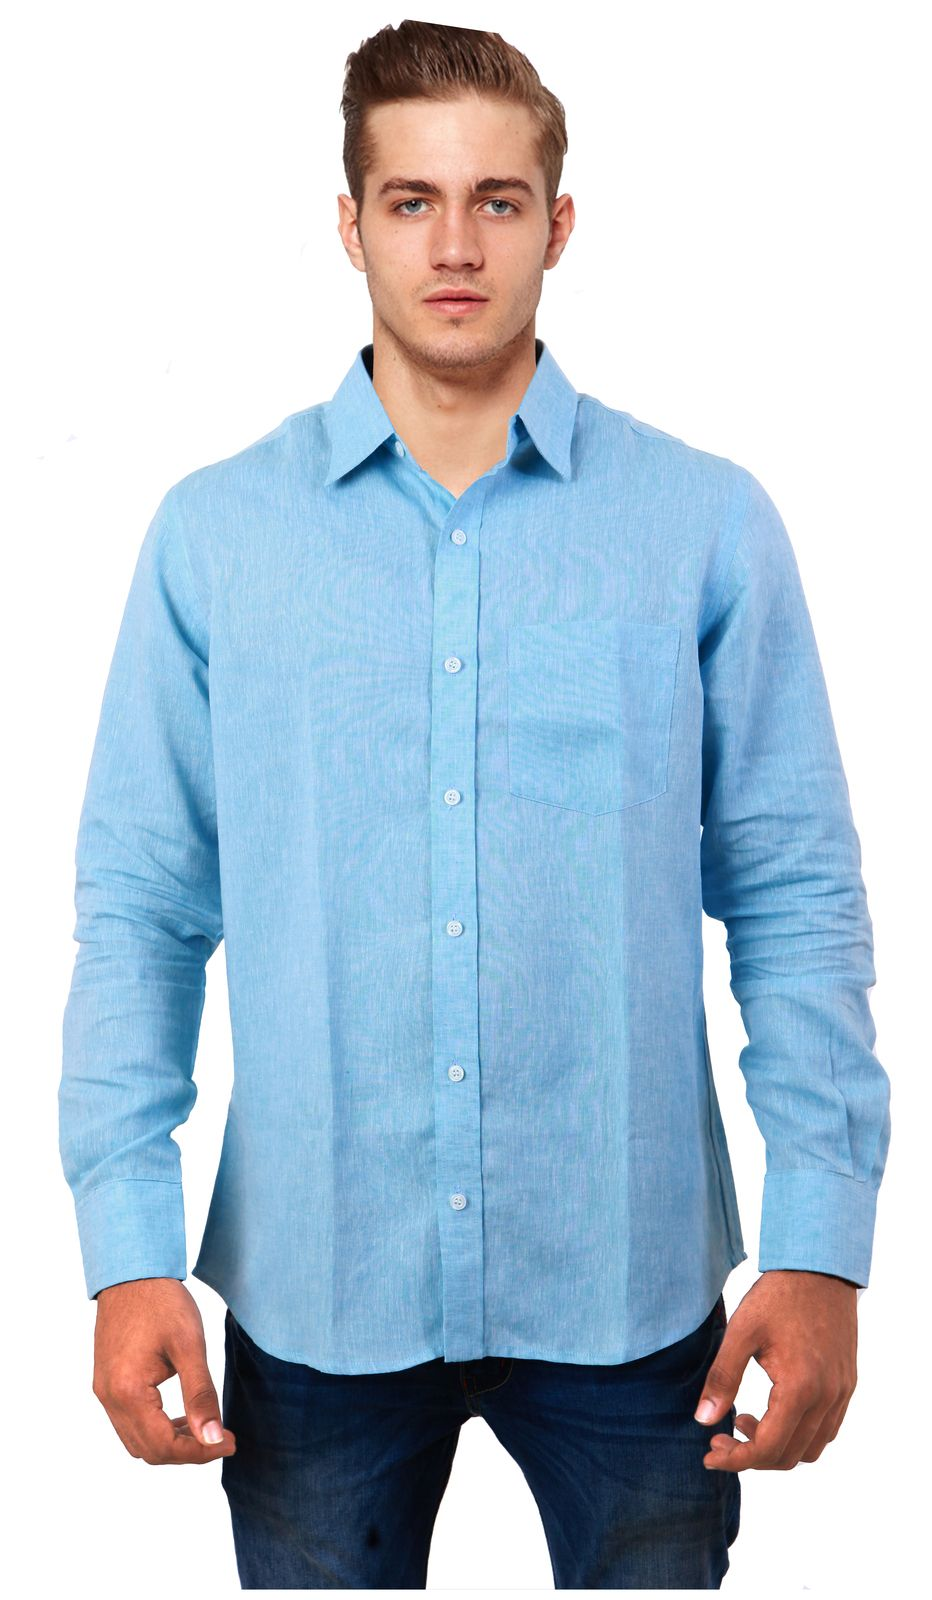 C O B R I O Pure Linen Shirt Finely Crafted 100 Pure Linen Shirt With Single Chest Pocket Front Placket Cur Light Blue Shirts Workout Shirts Casual Shirts